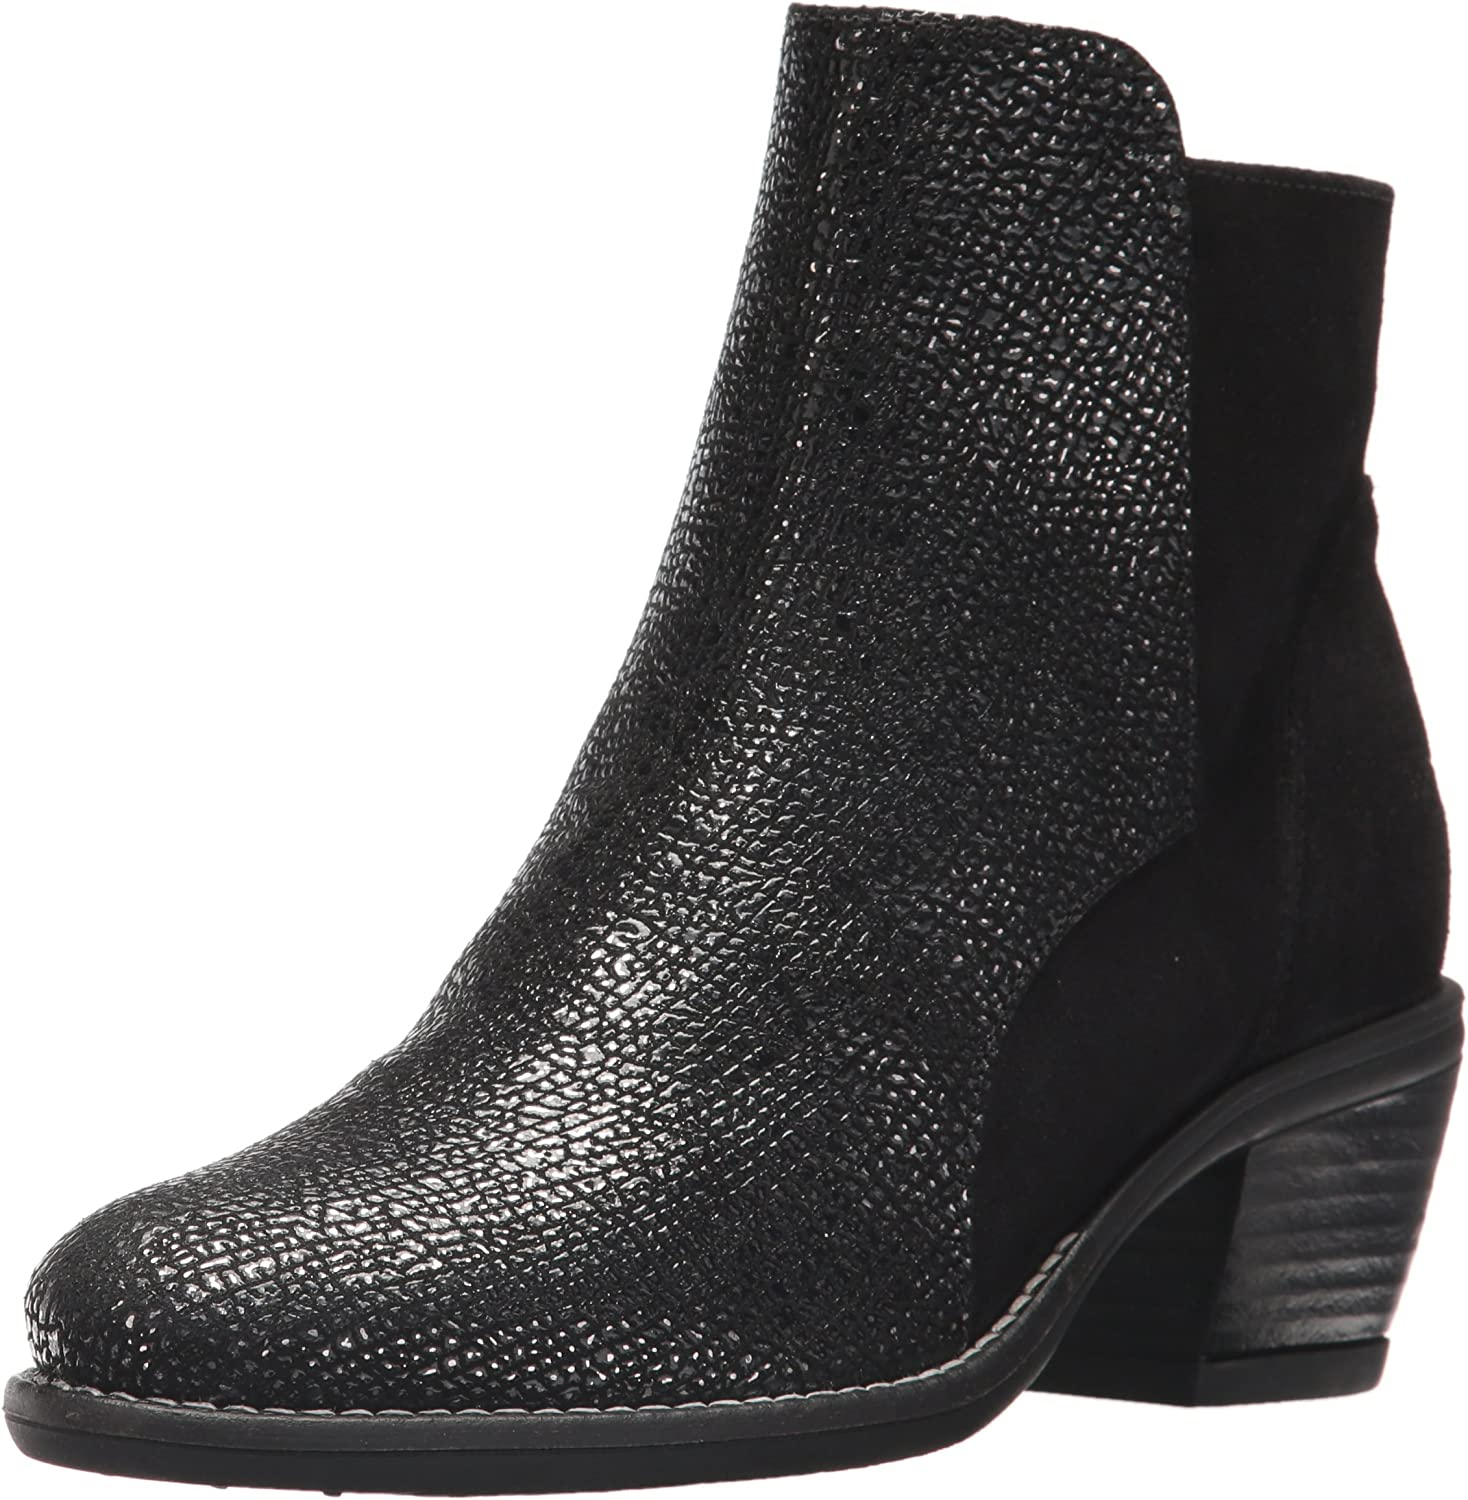 Bos. & Co. Womens Glenbor Ankle Boot